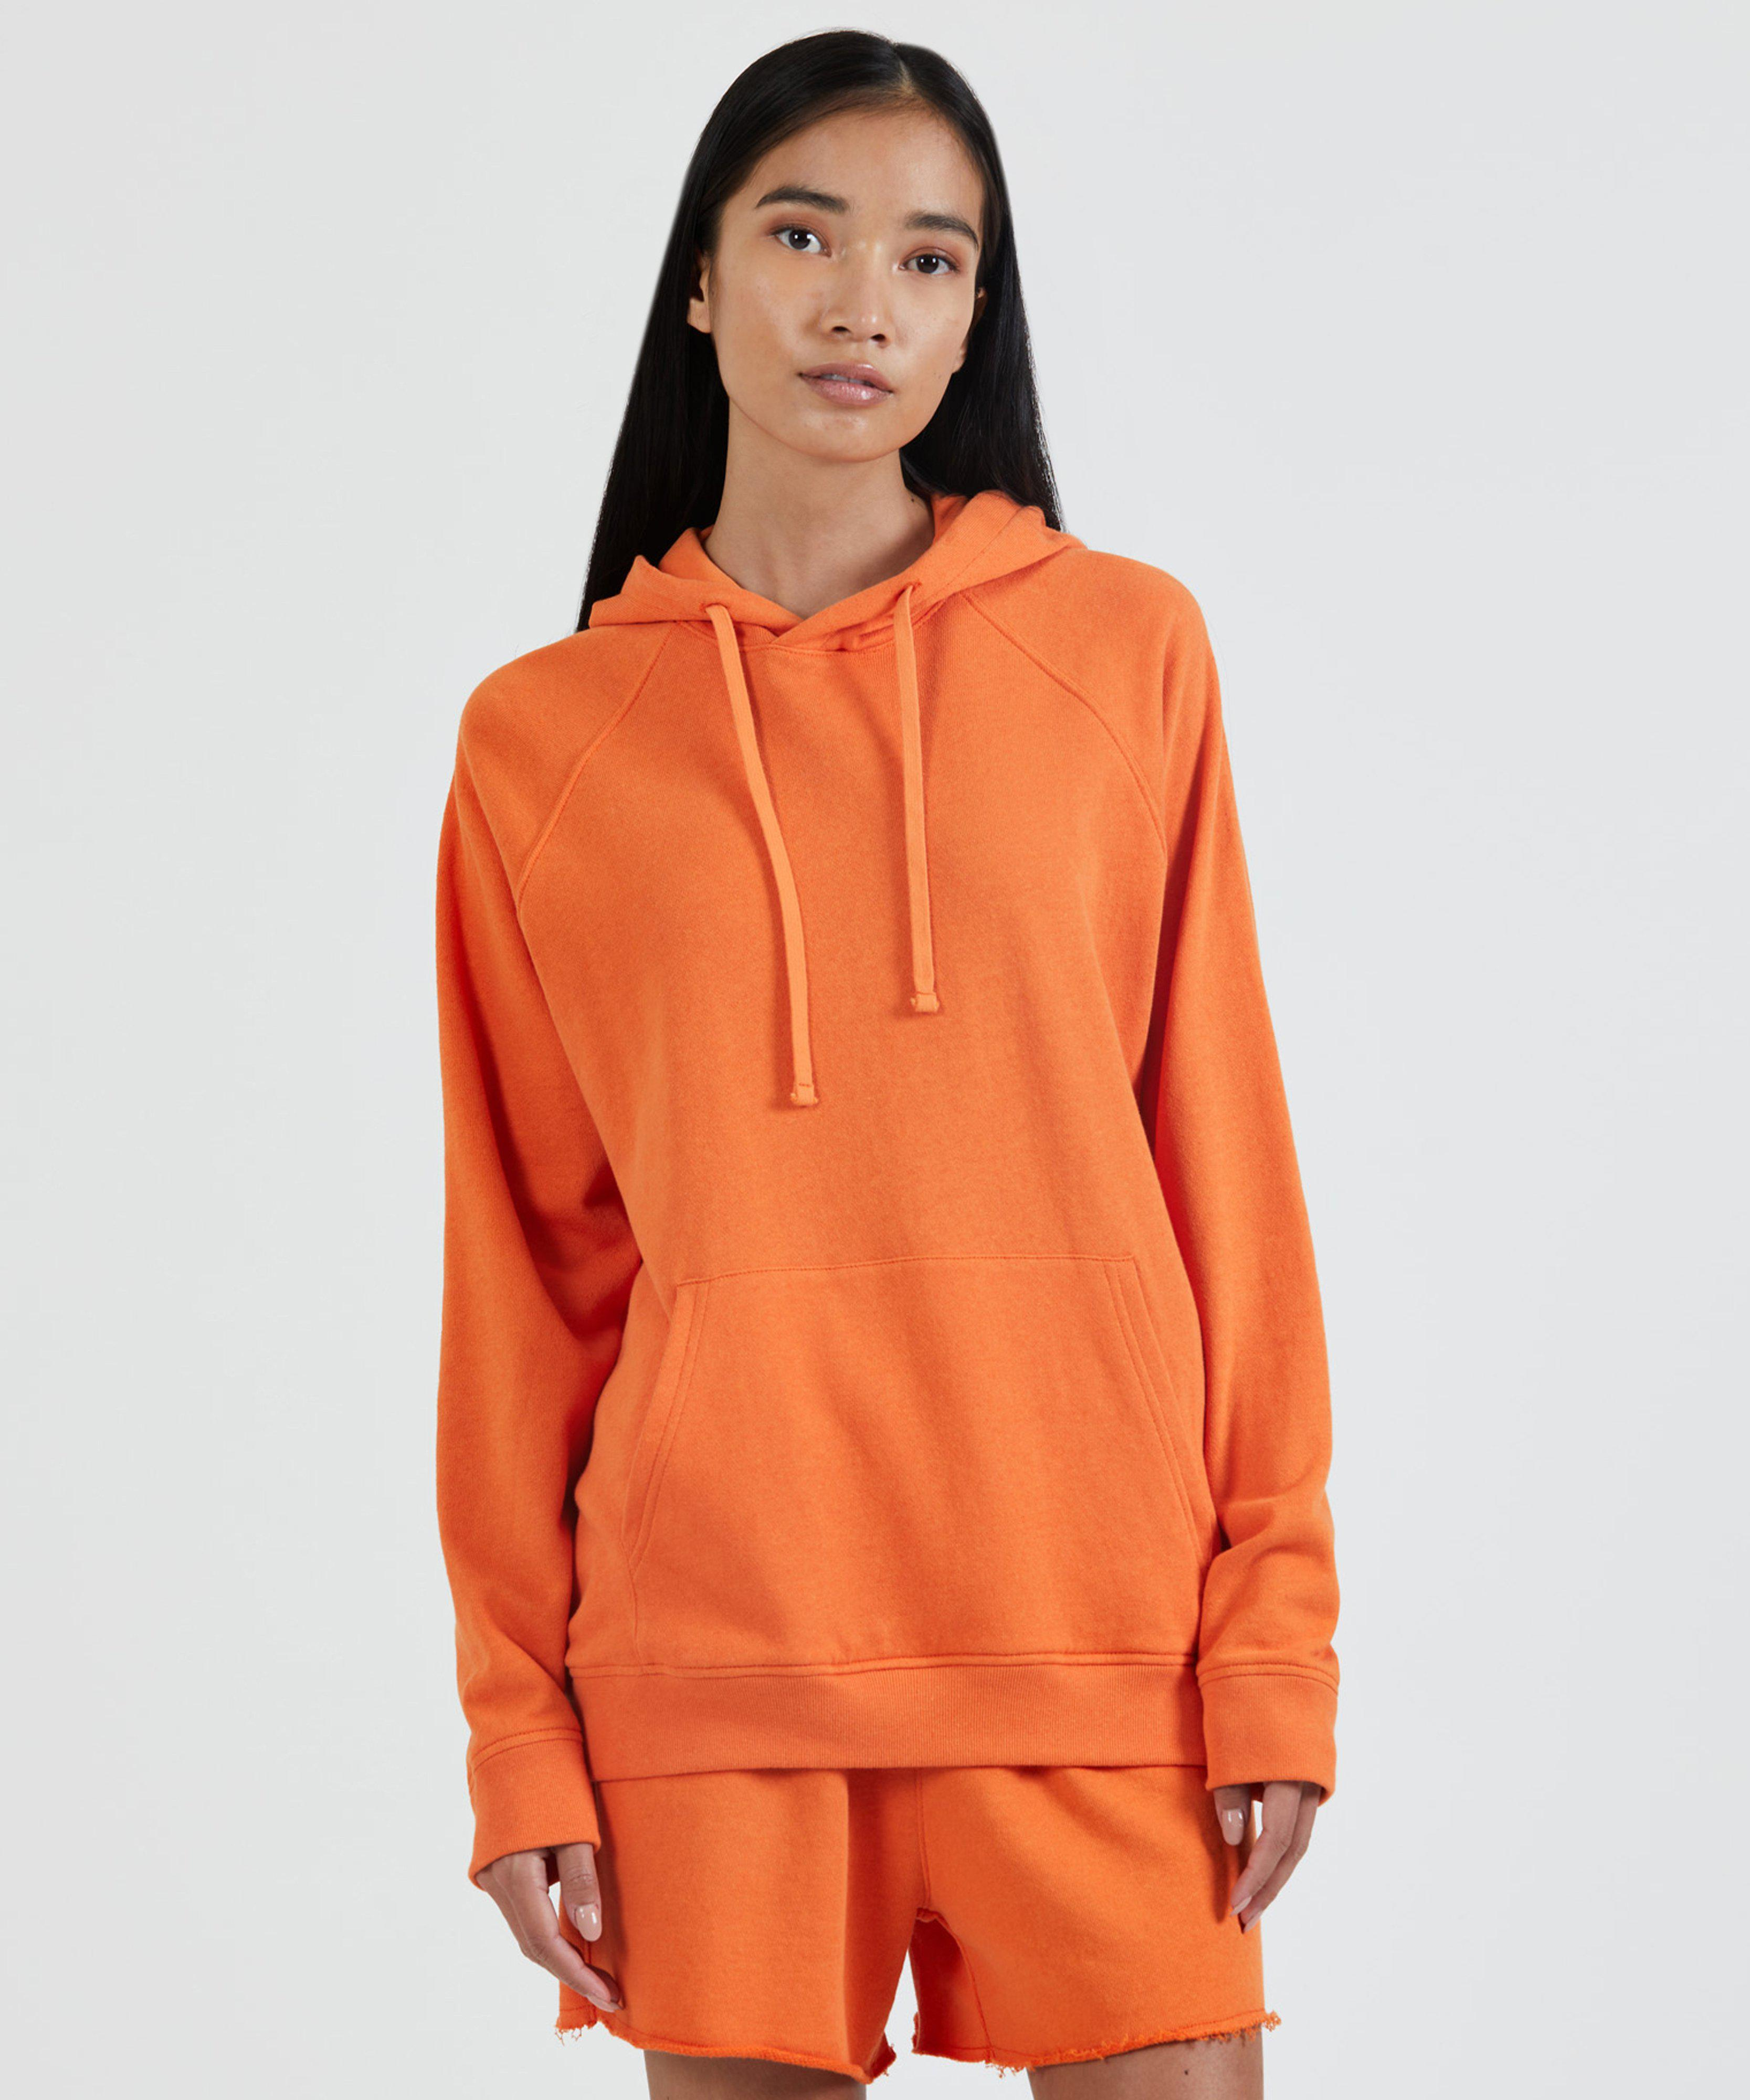 French Terry Pull-Over Hoodie - Clementine